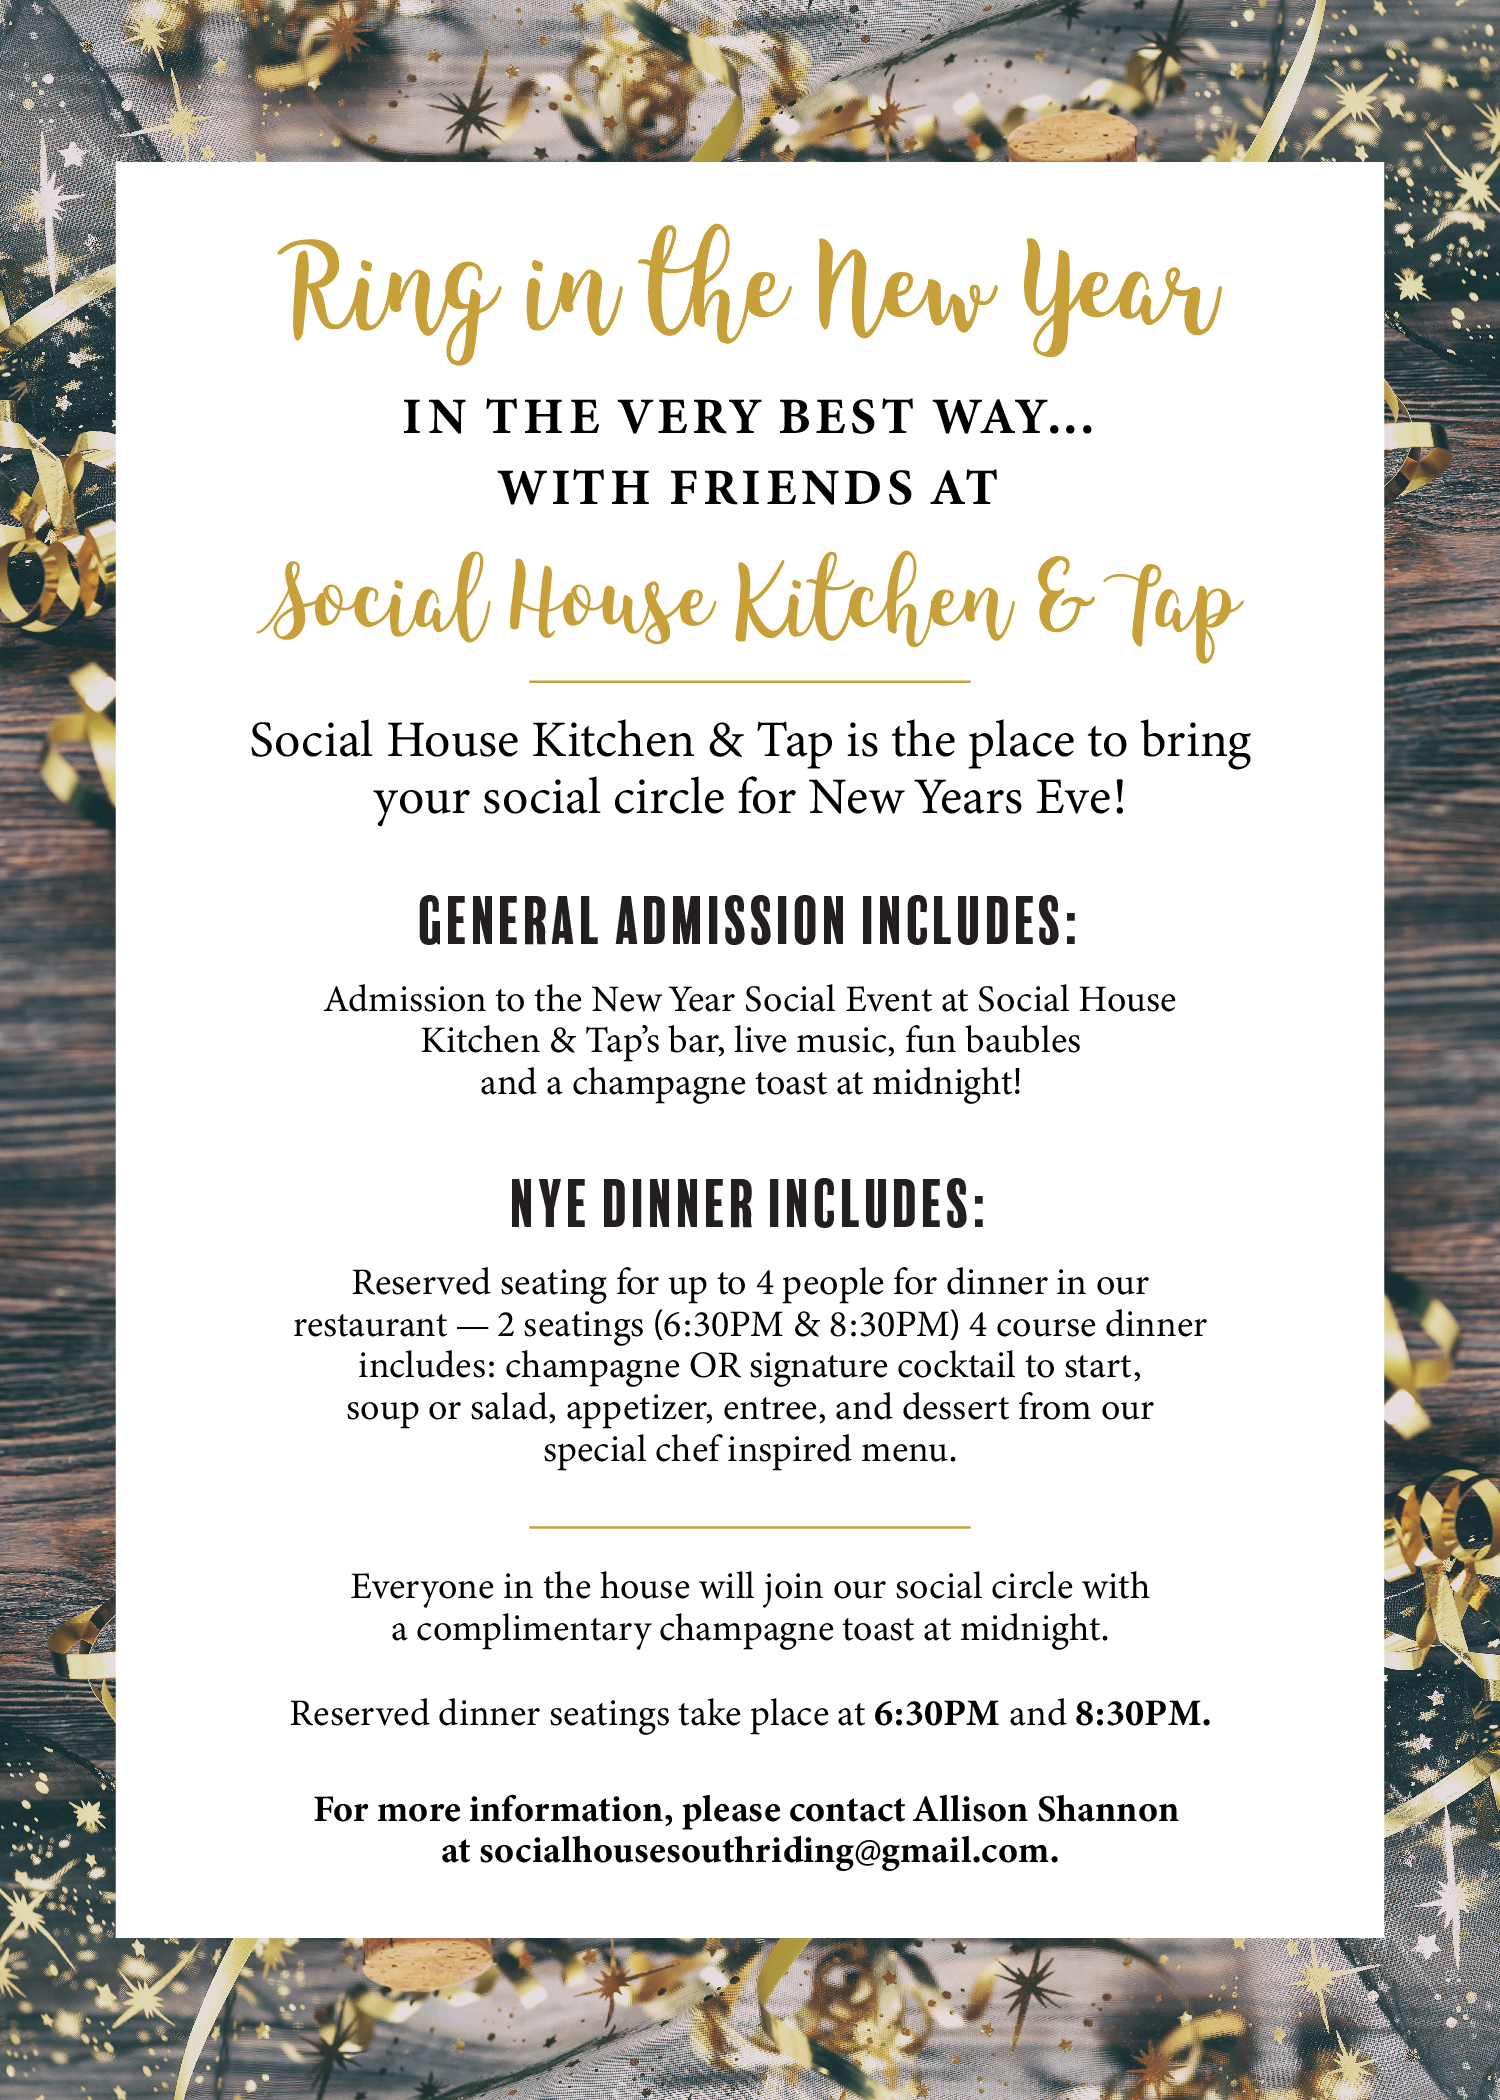 Ring in the New Year at Social House!